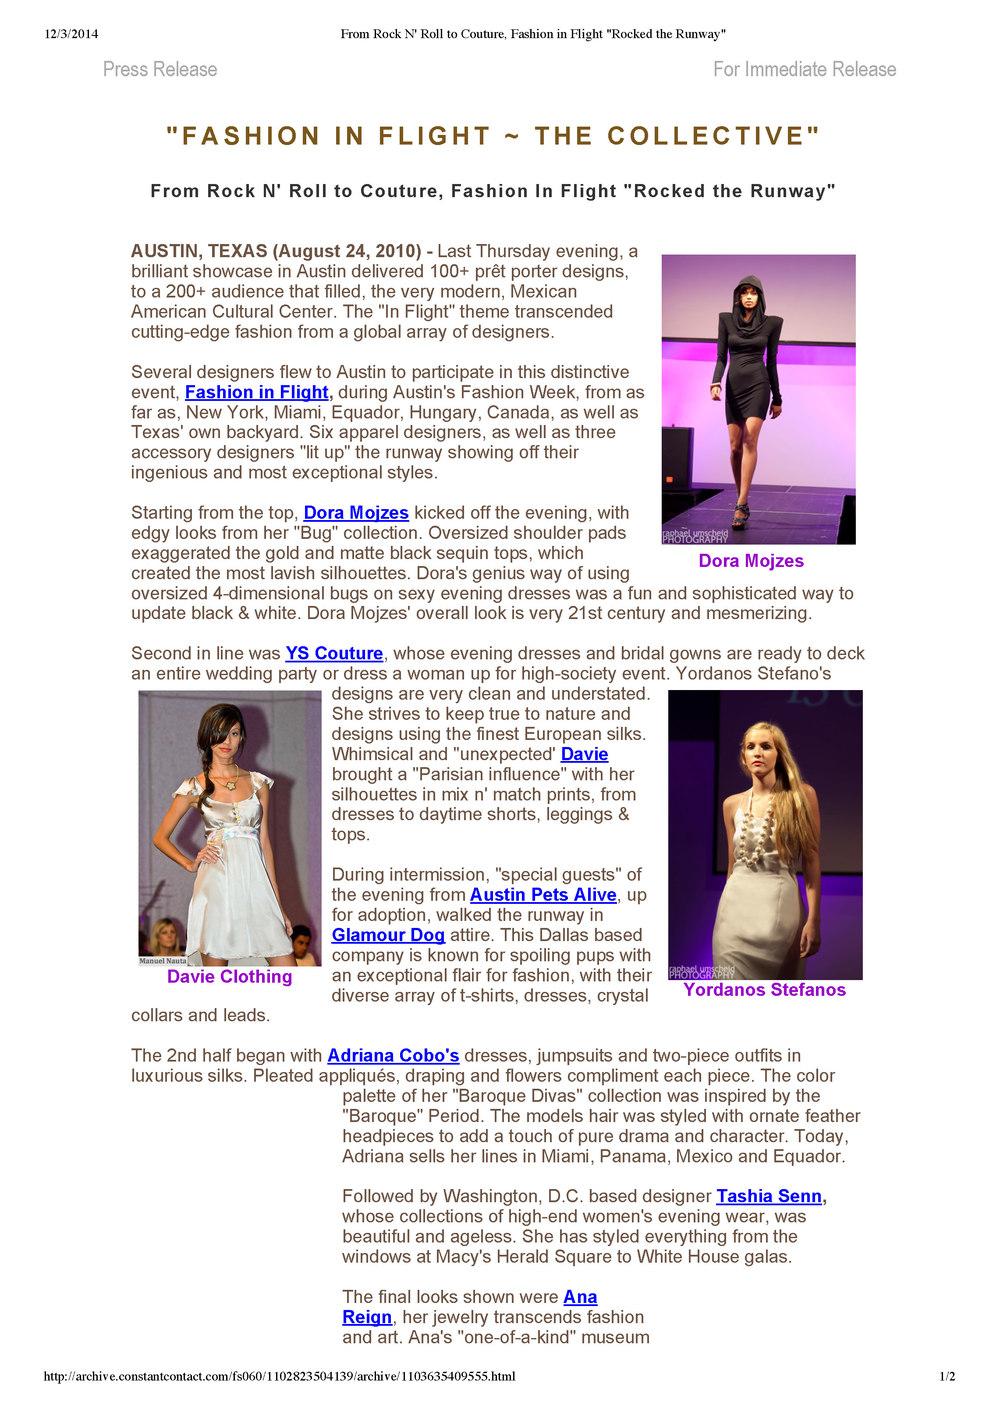 """Preview of """"From Rock N' Roll to Cou...ght %22Rocked the Runway%22""""_Page_1.jpg"""